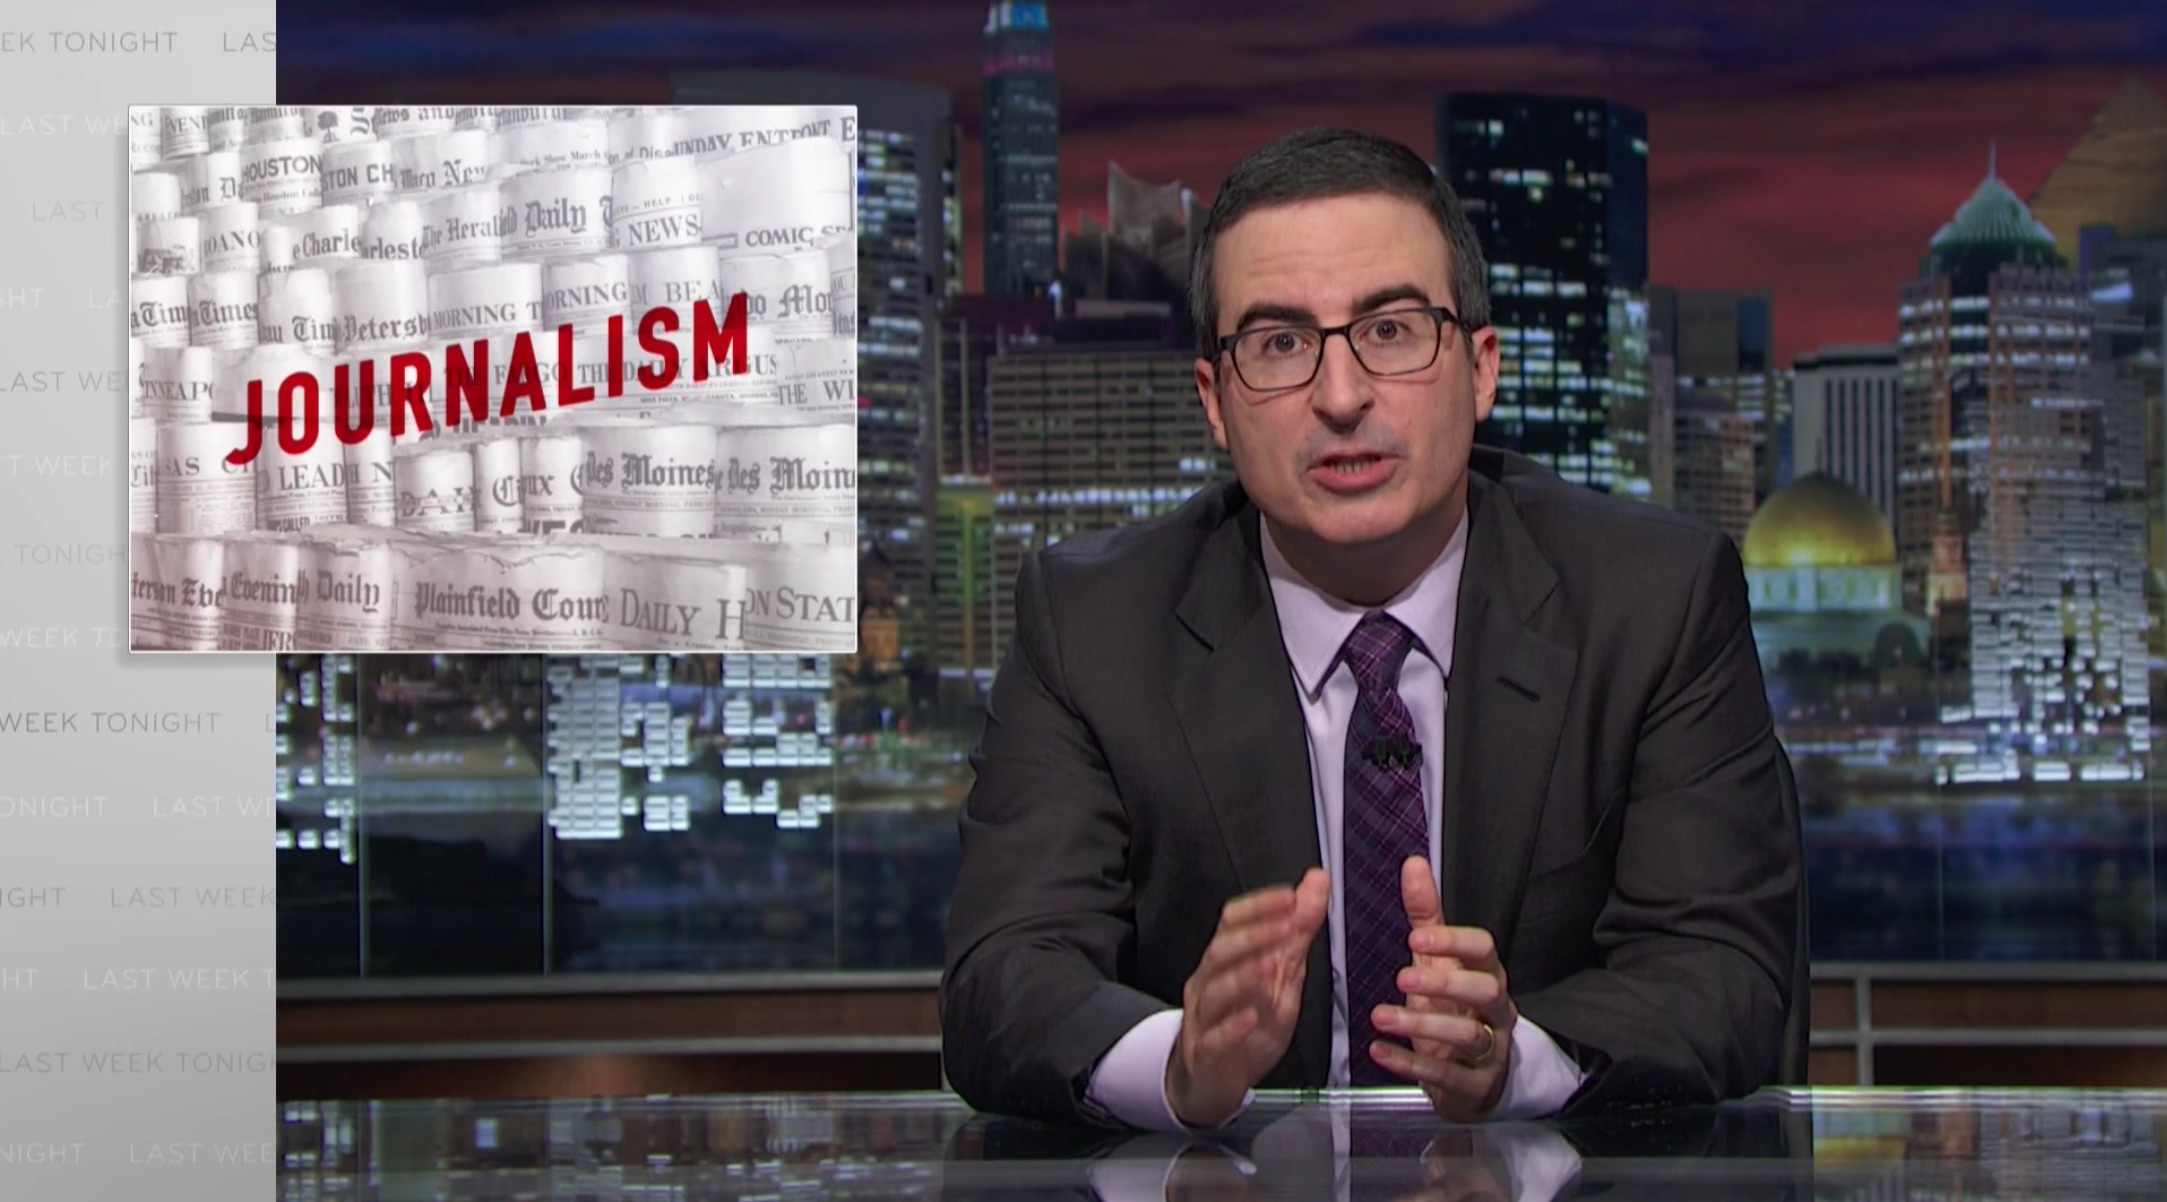 HBO's John Oliver gives a passionate pitch for local newspapers